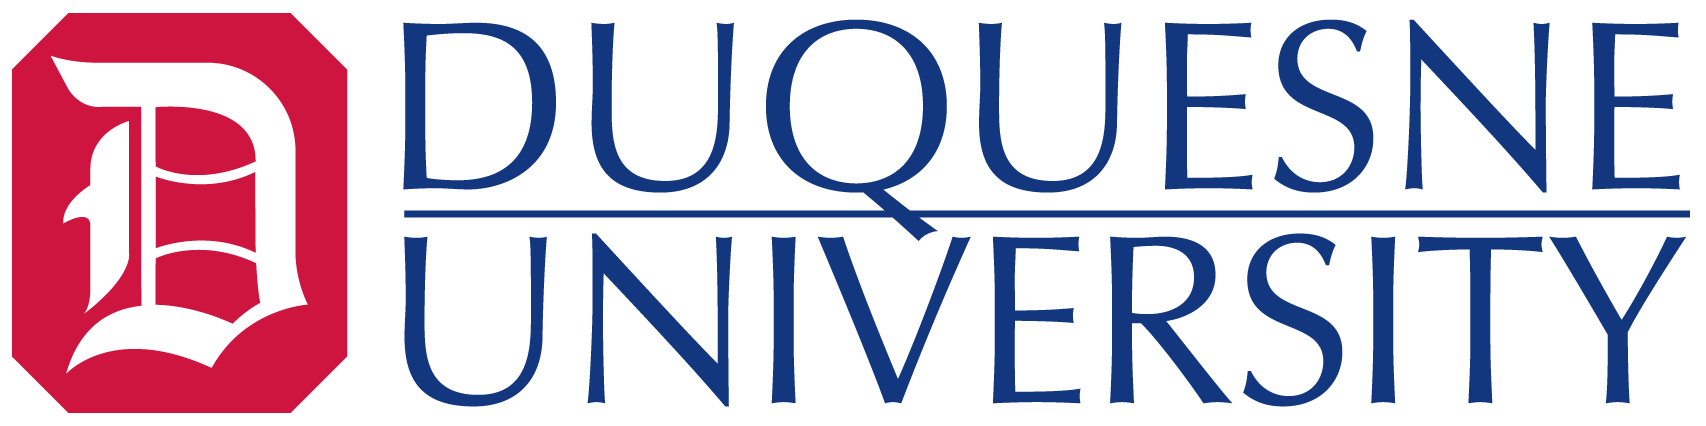 Duquesne University - Environmental Science and Management